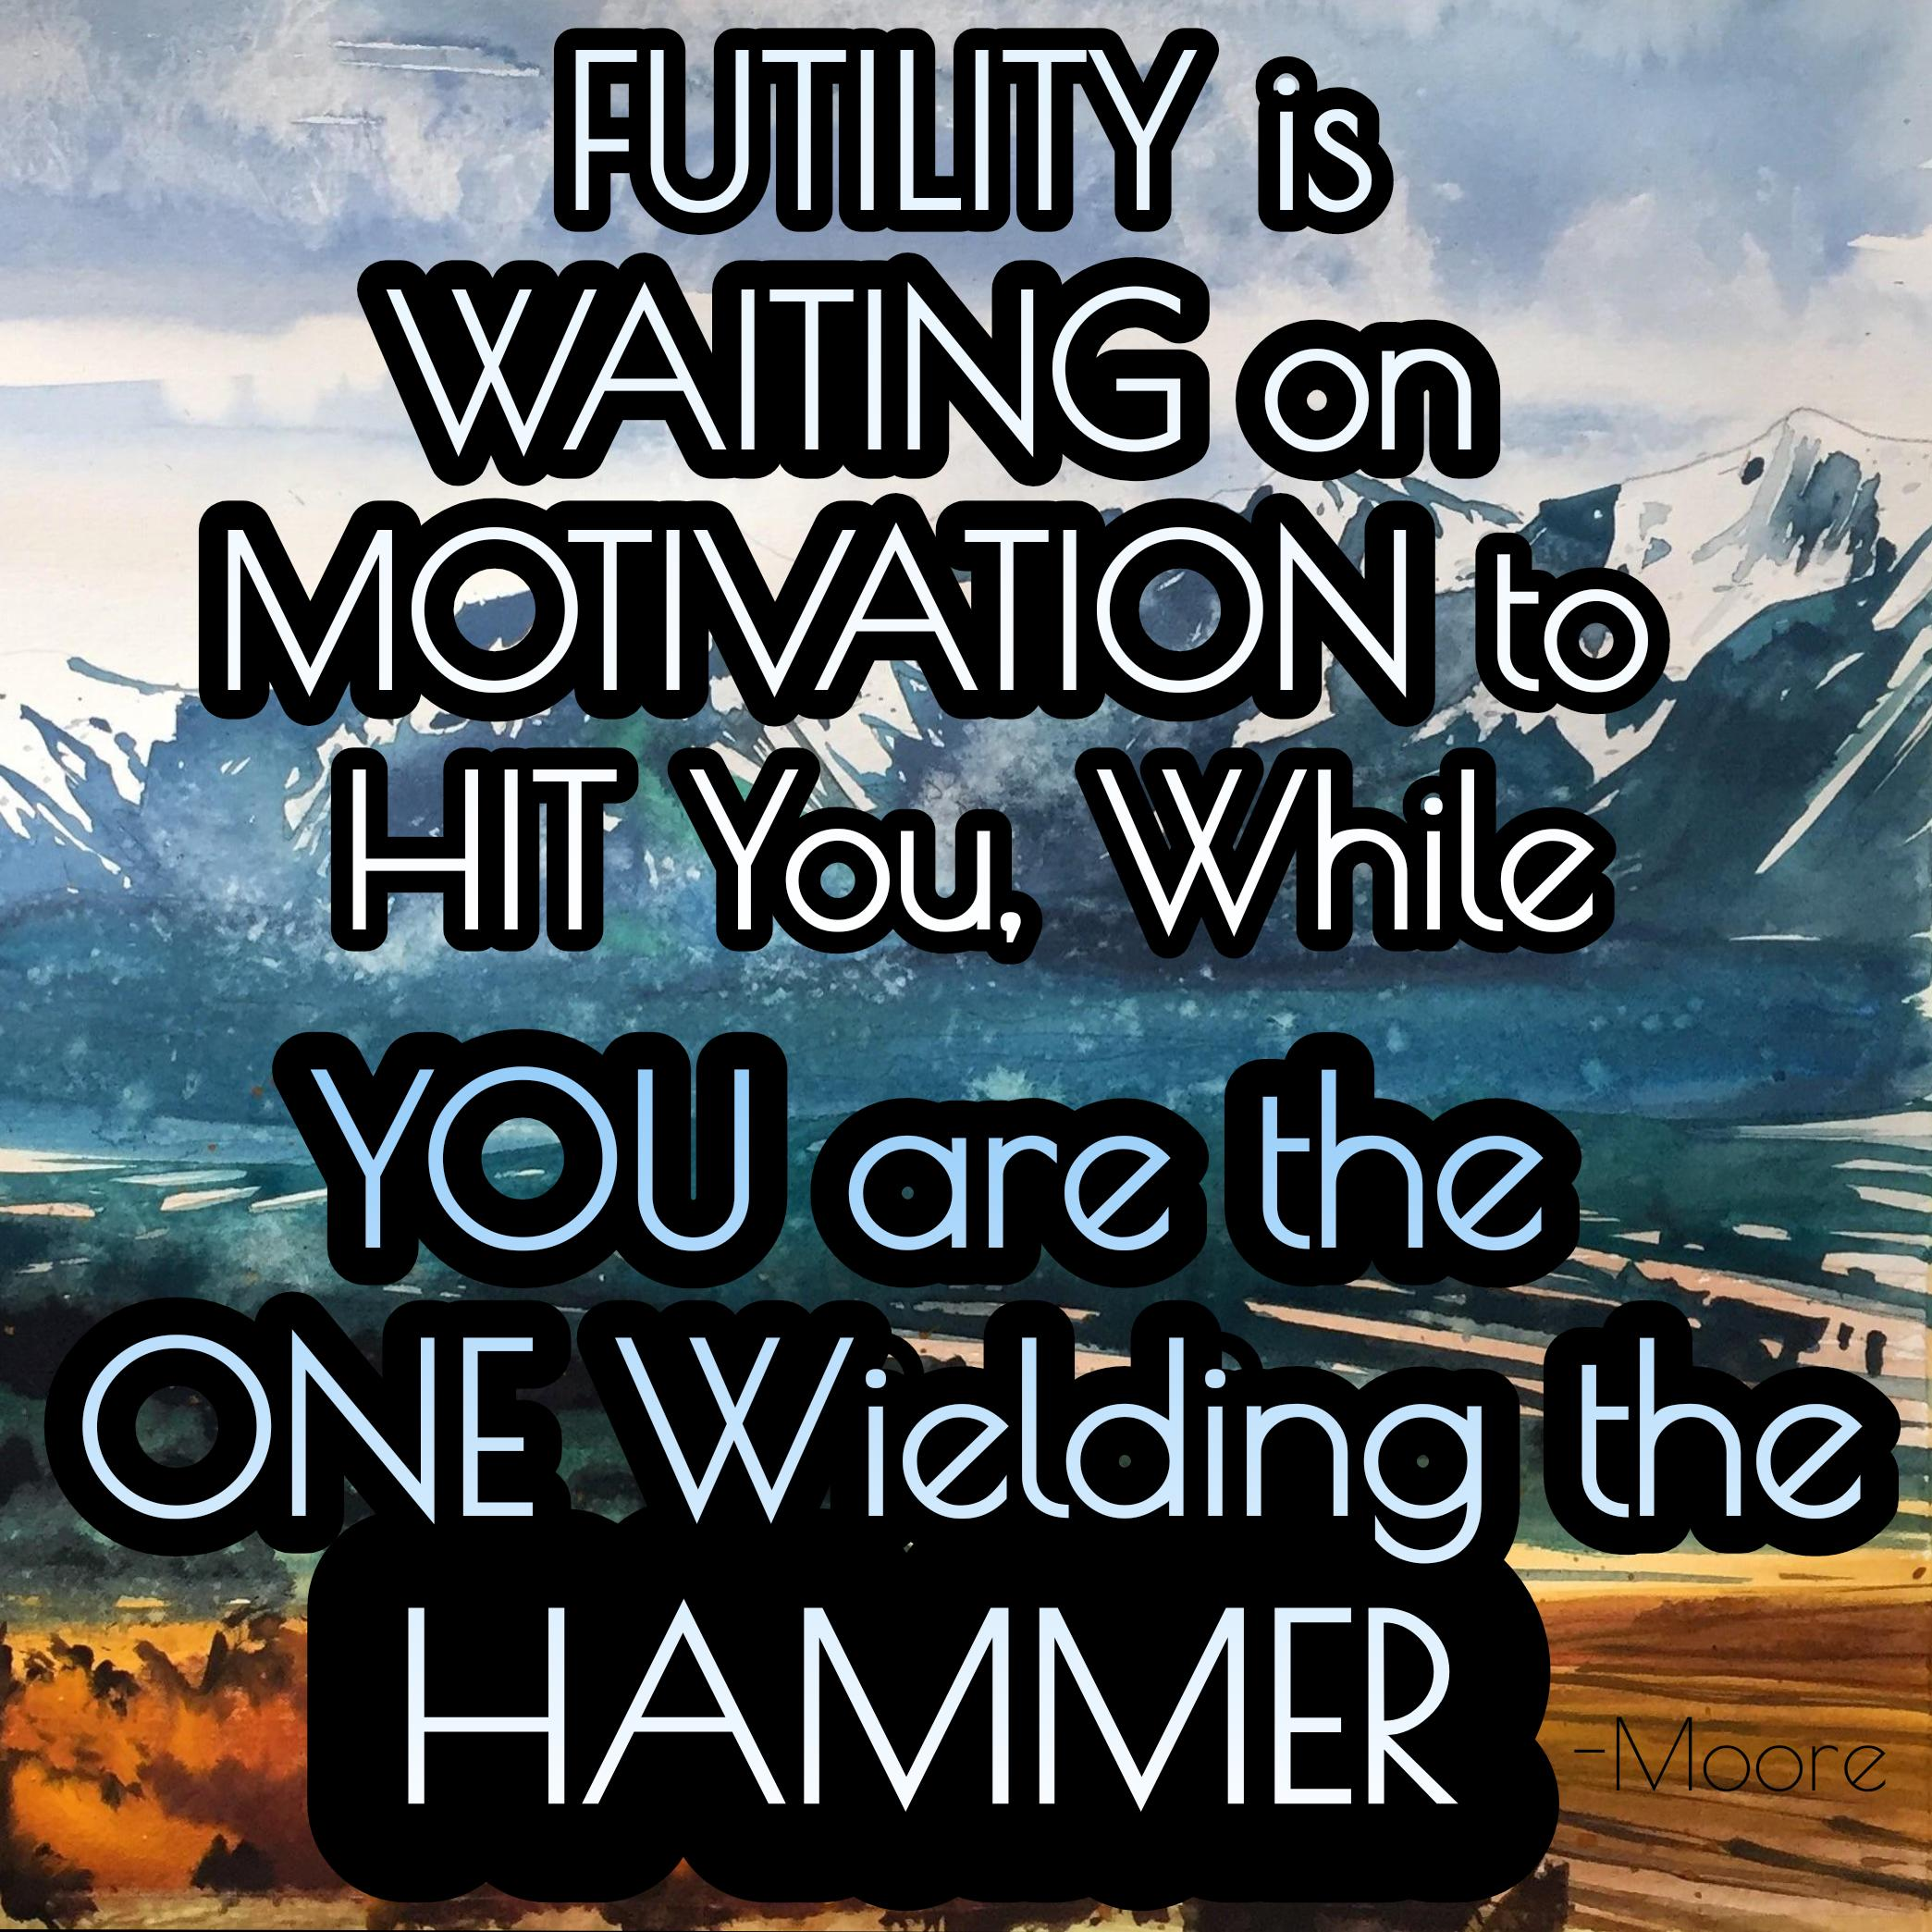 """Futility is waiting on motivation to hit you, while you are the one wielding the hammer"" -Moore [2089×2089] [OC]"